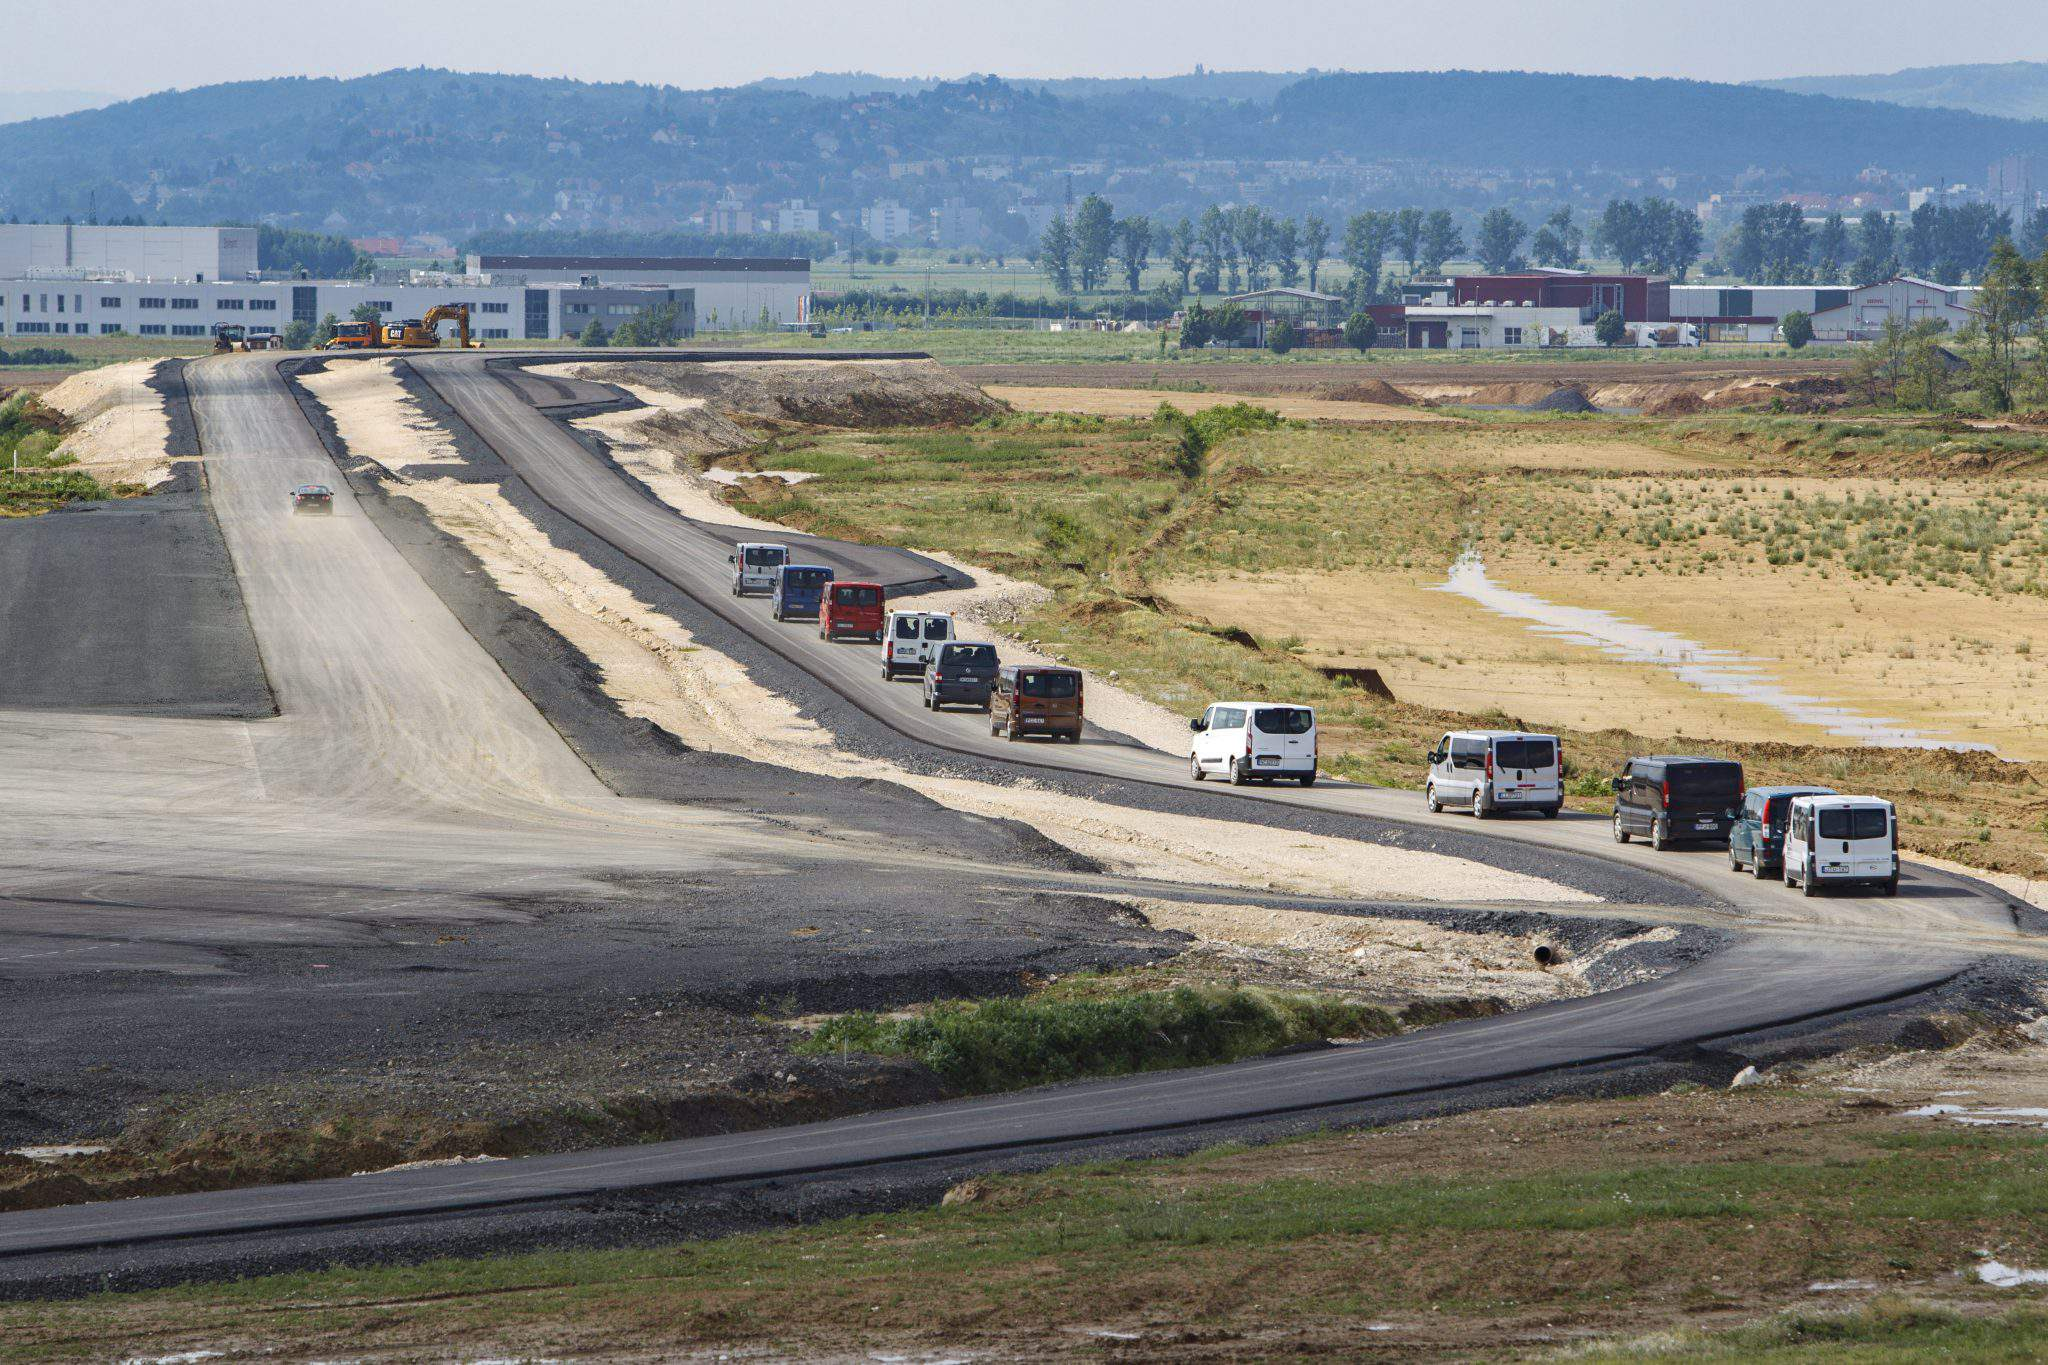 Hungary's biggest test track soon to be finished